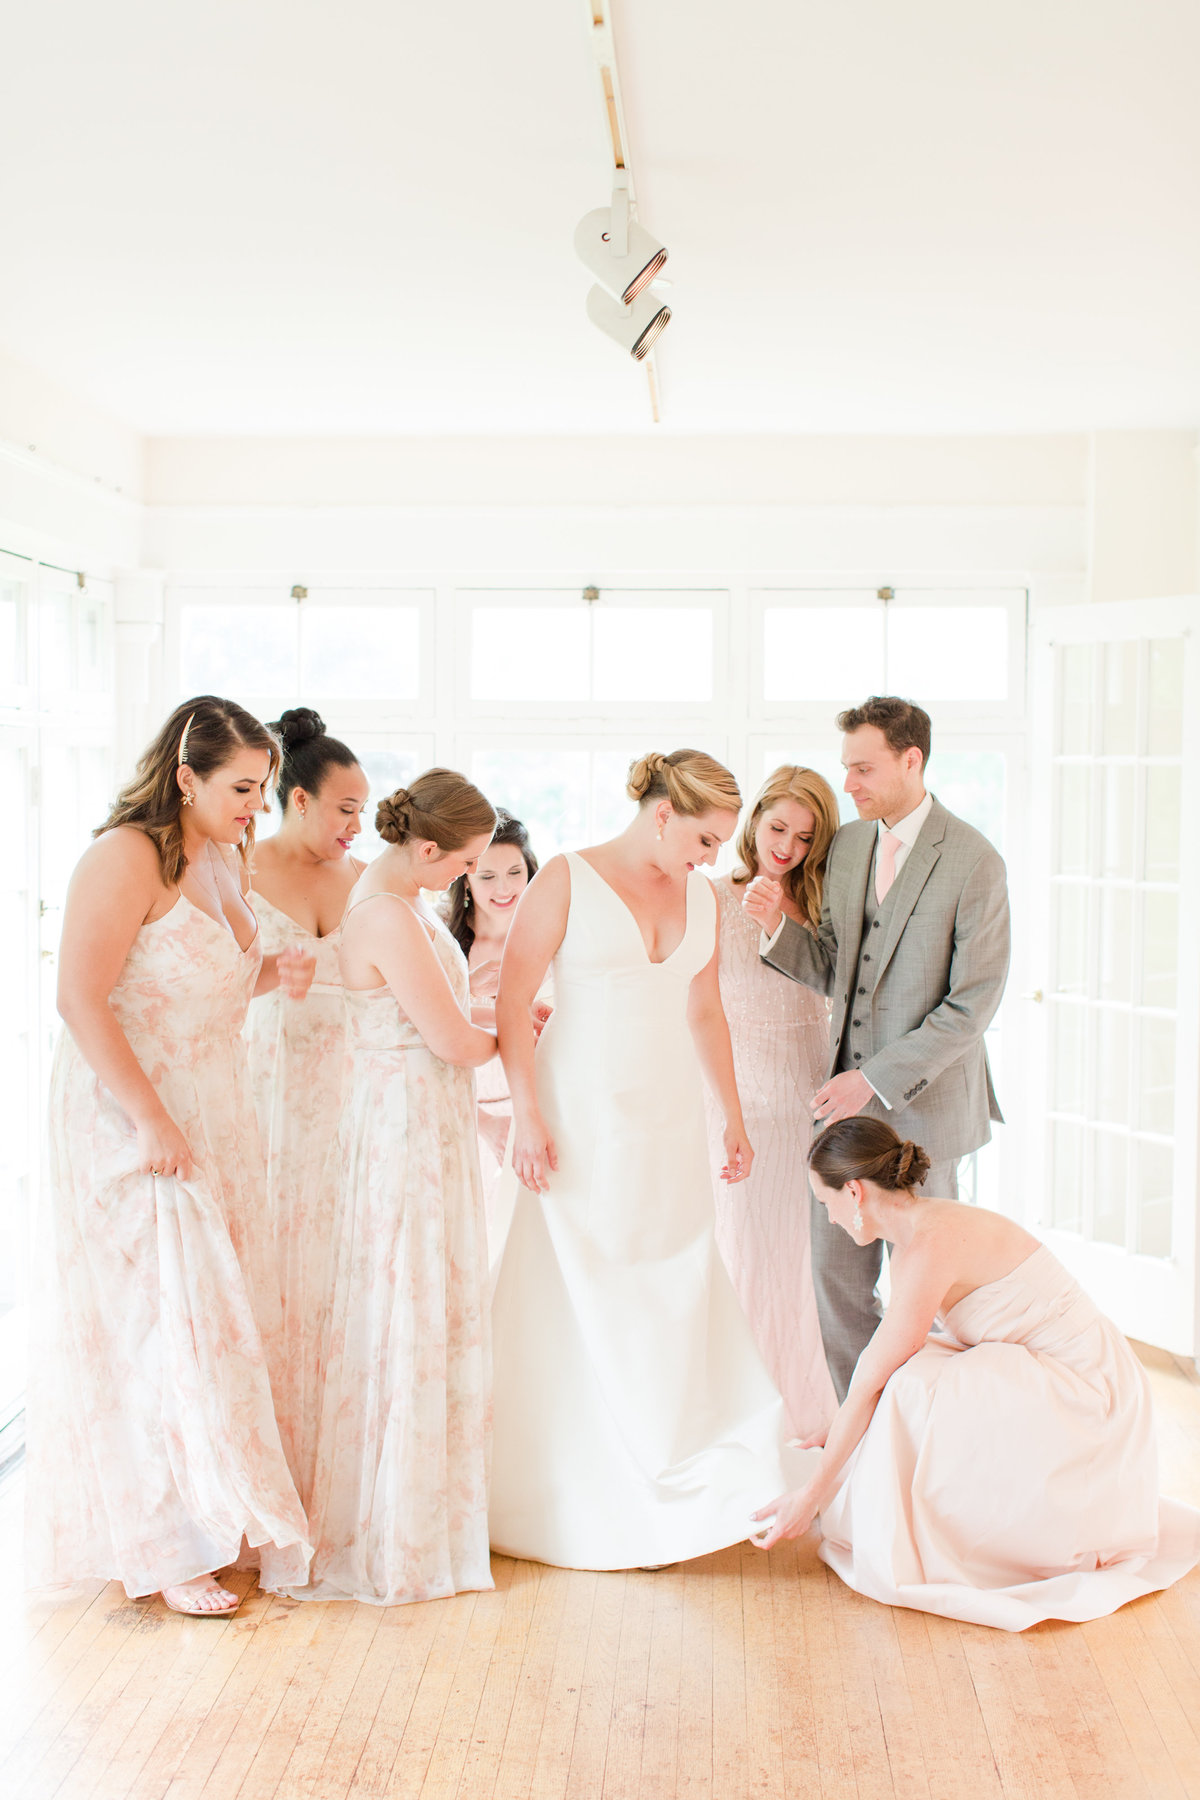 glenview-mansion-rockville-maryland-bourbon-derby-buker-wedding-getting-ready-bethanne-arthur-photography-photos-105